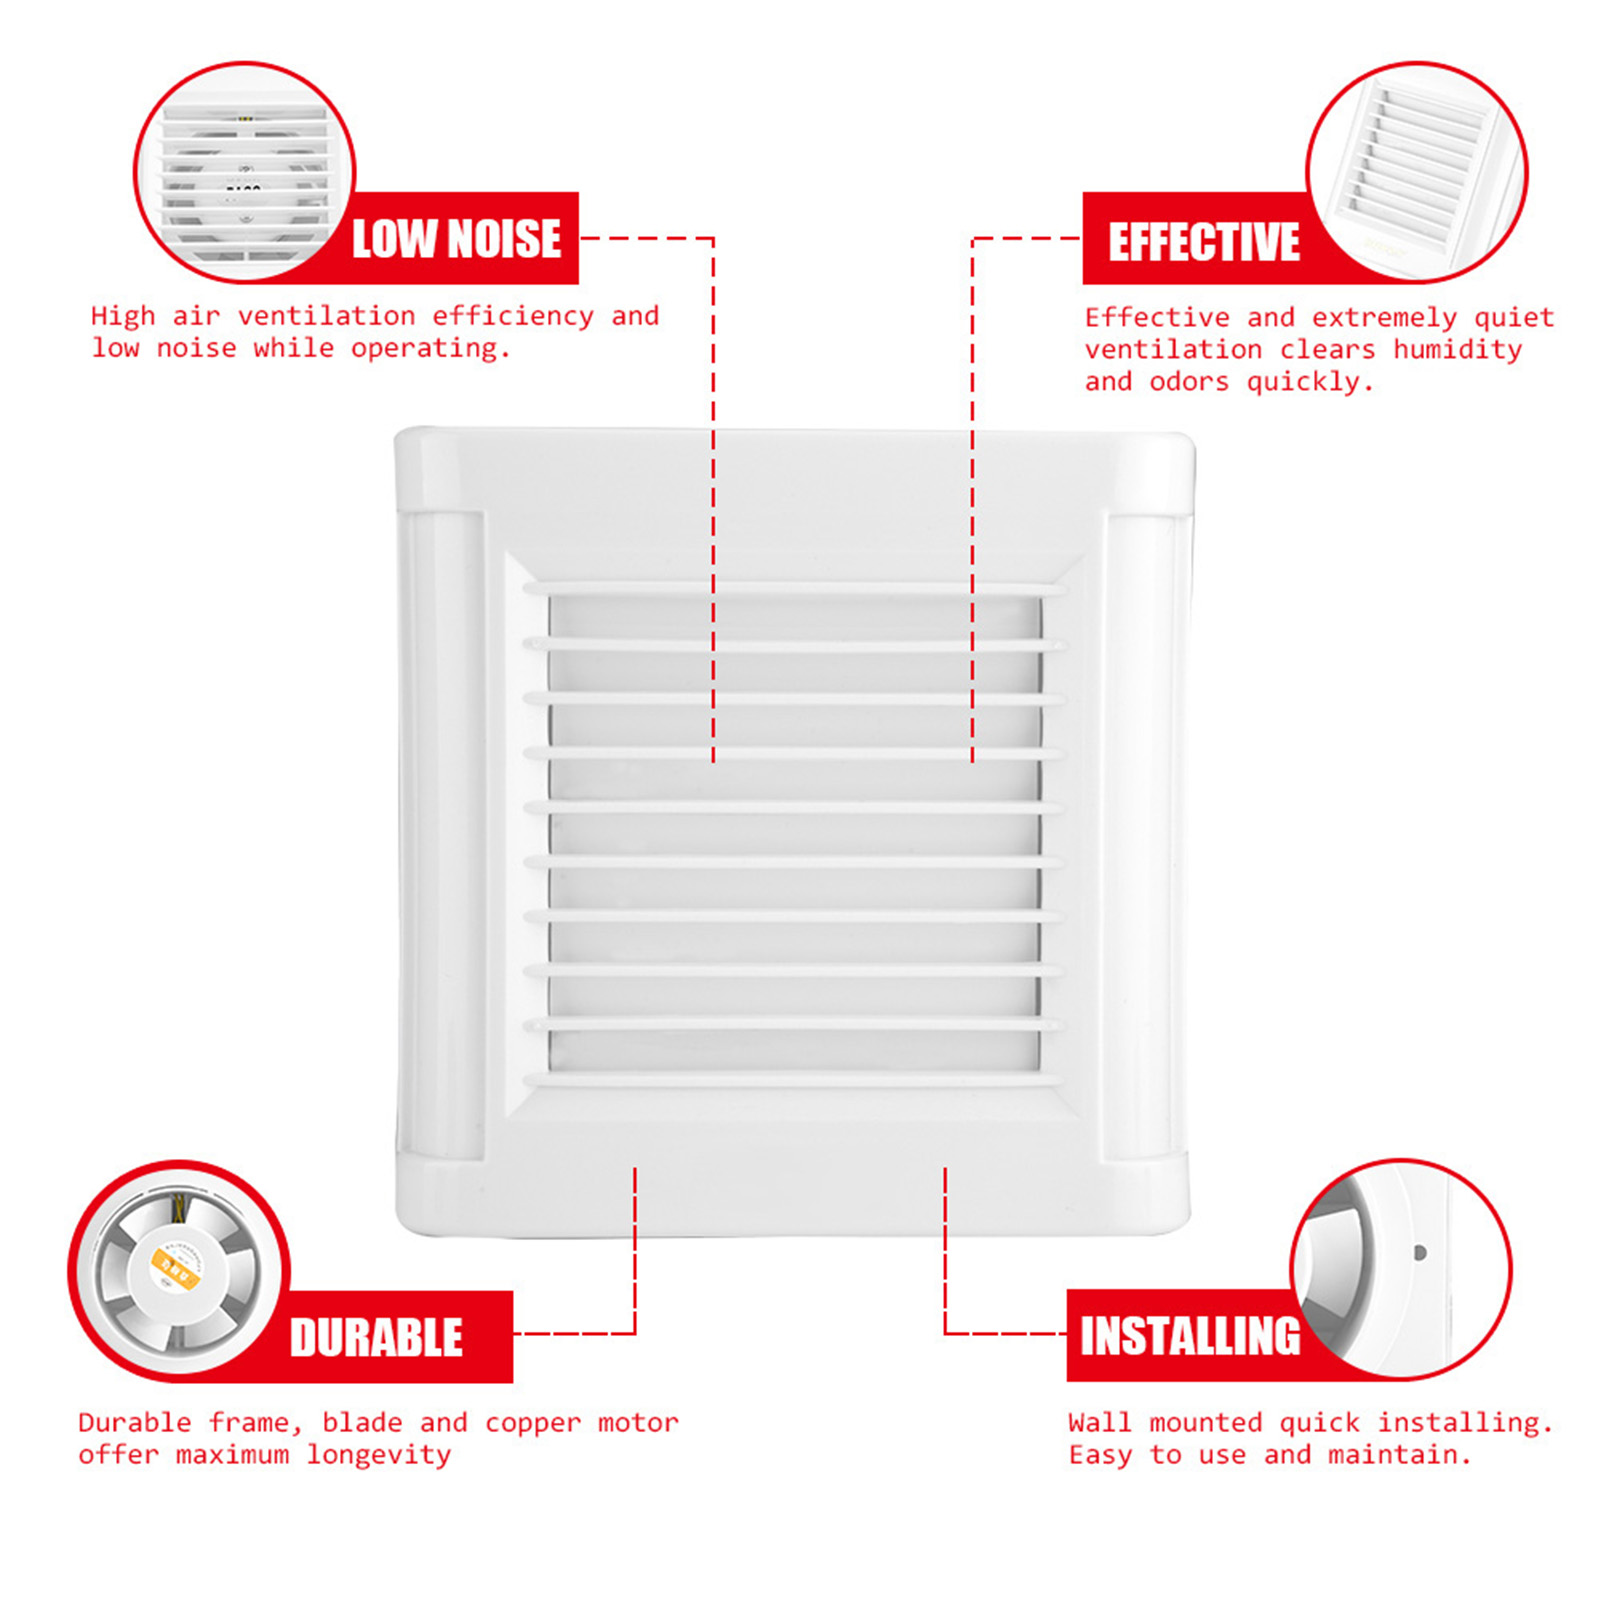 15W Wall Mounted Exhaust Fan Low Noise Air Vent Ventilation